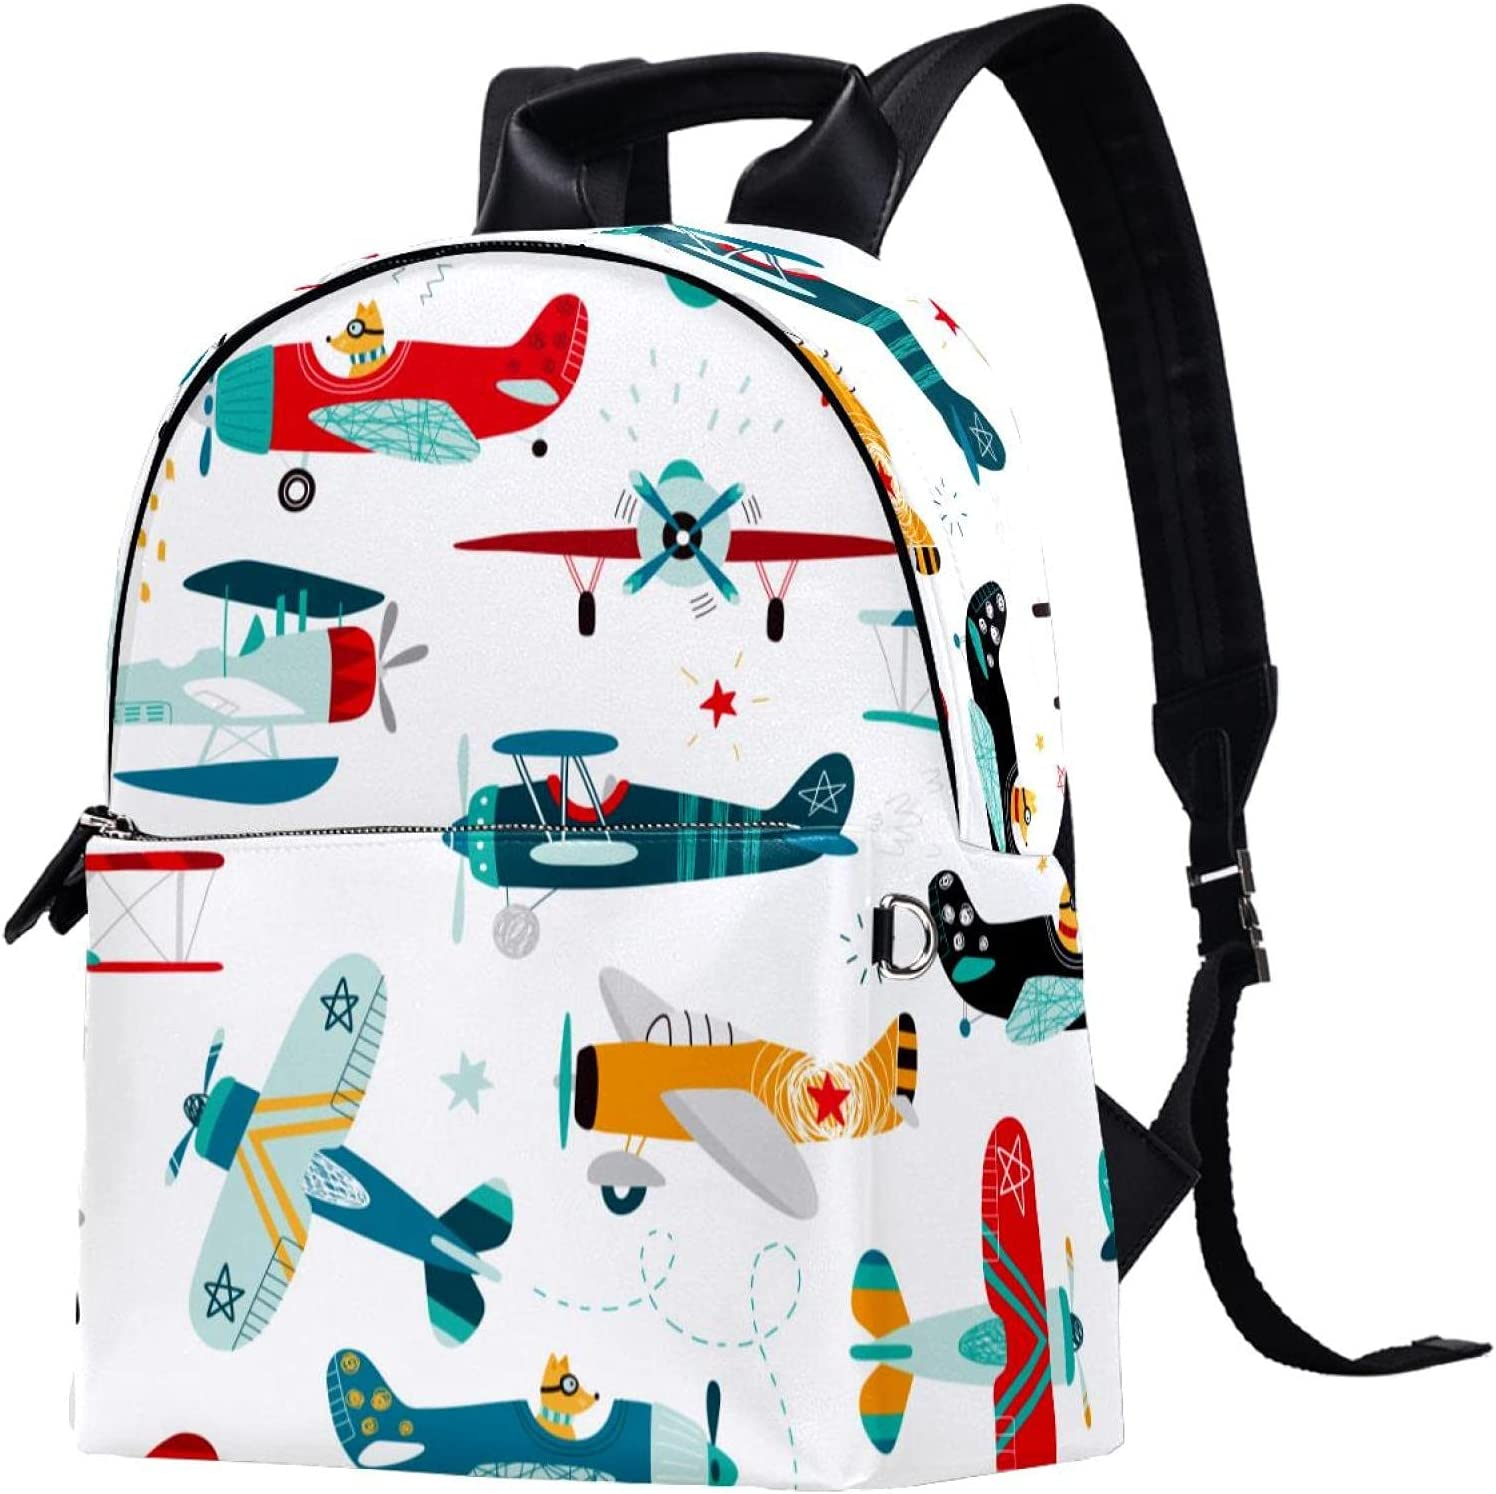 Backpack Size: Free Shipping Cheap Bargain Gift 14.5x12.5x5.9 in Leather Fashion Casual Dedication